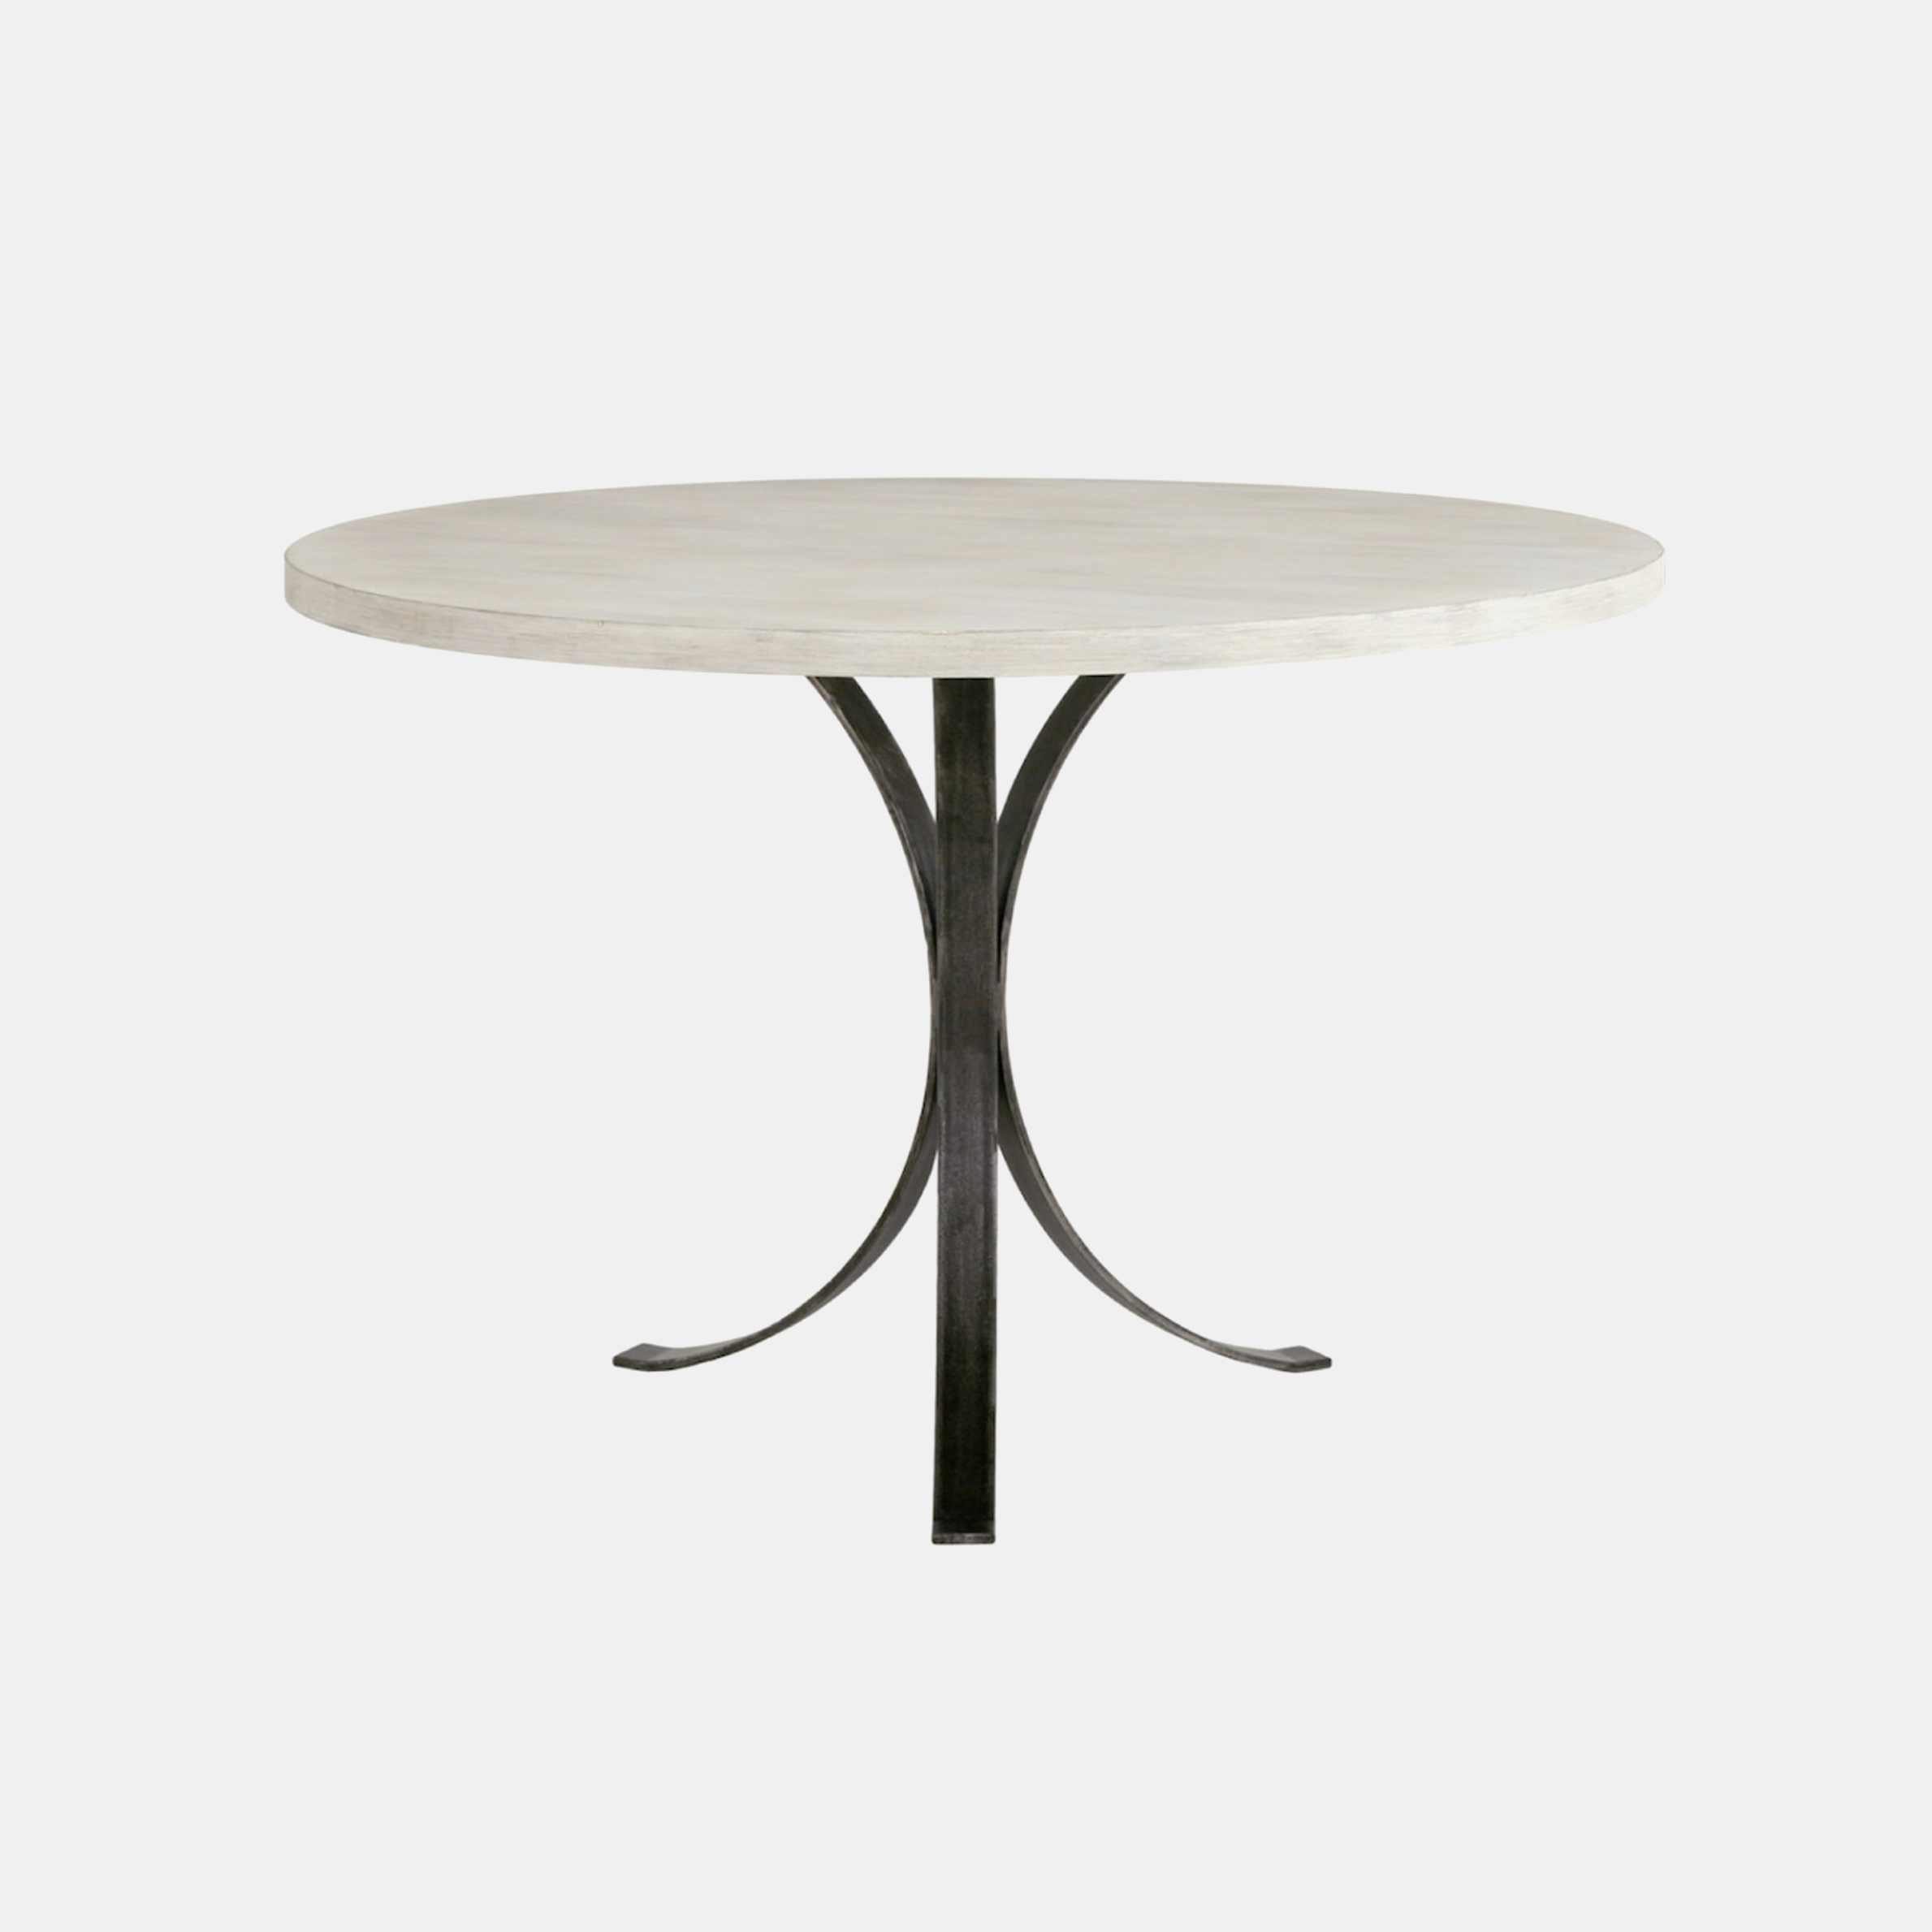 """Quincy Dining Table  36"""", 40"""", 42"""" or 44"""" round x 30""""h Available in several top and base finishes. Also available as side table, desk, and square and oval dining tables. SKU937RFH"""